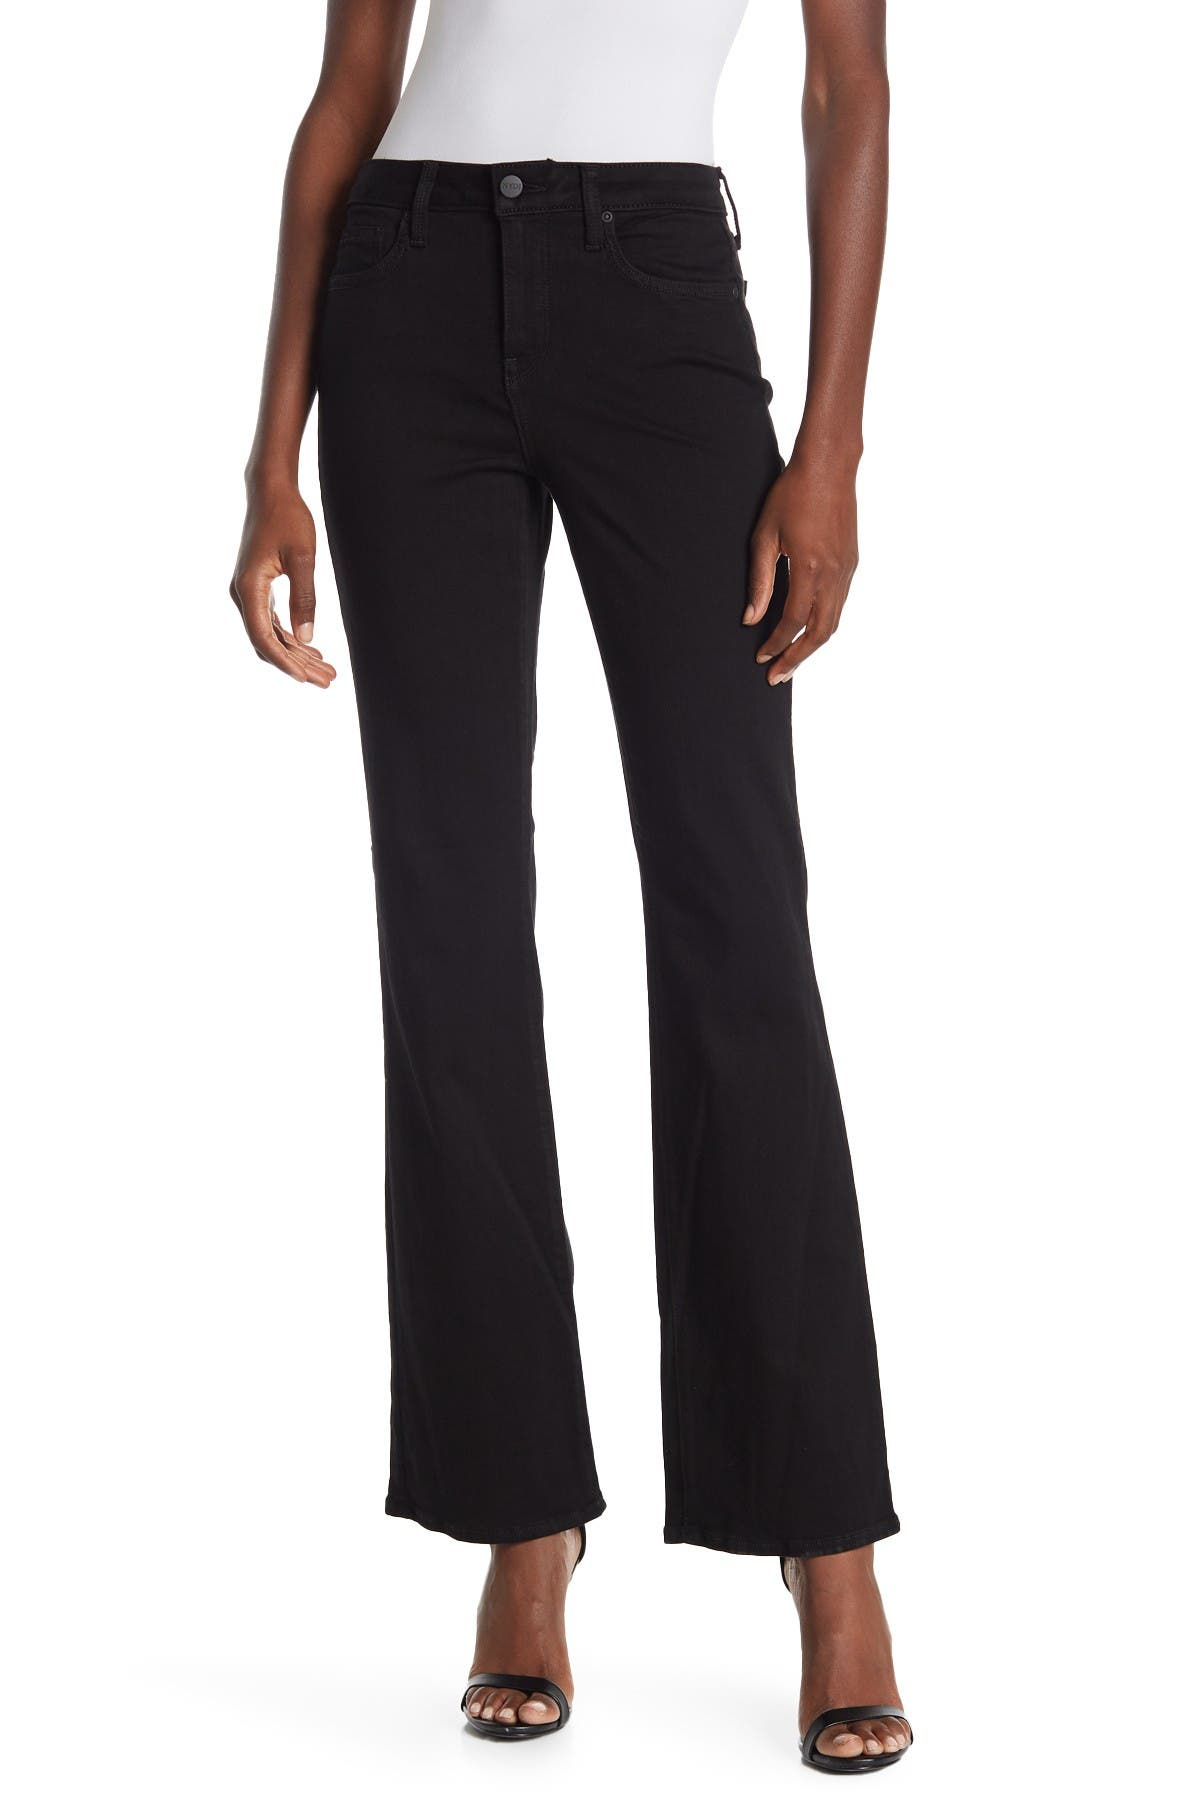 Image of NYDJ Barbara High Waisted Bootcut Jeans